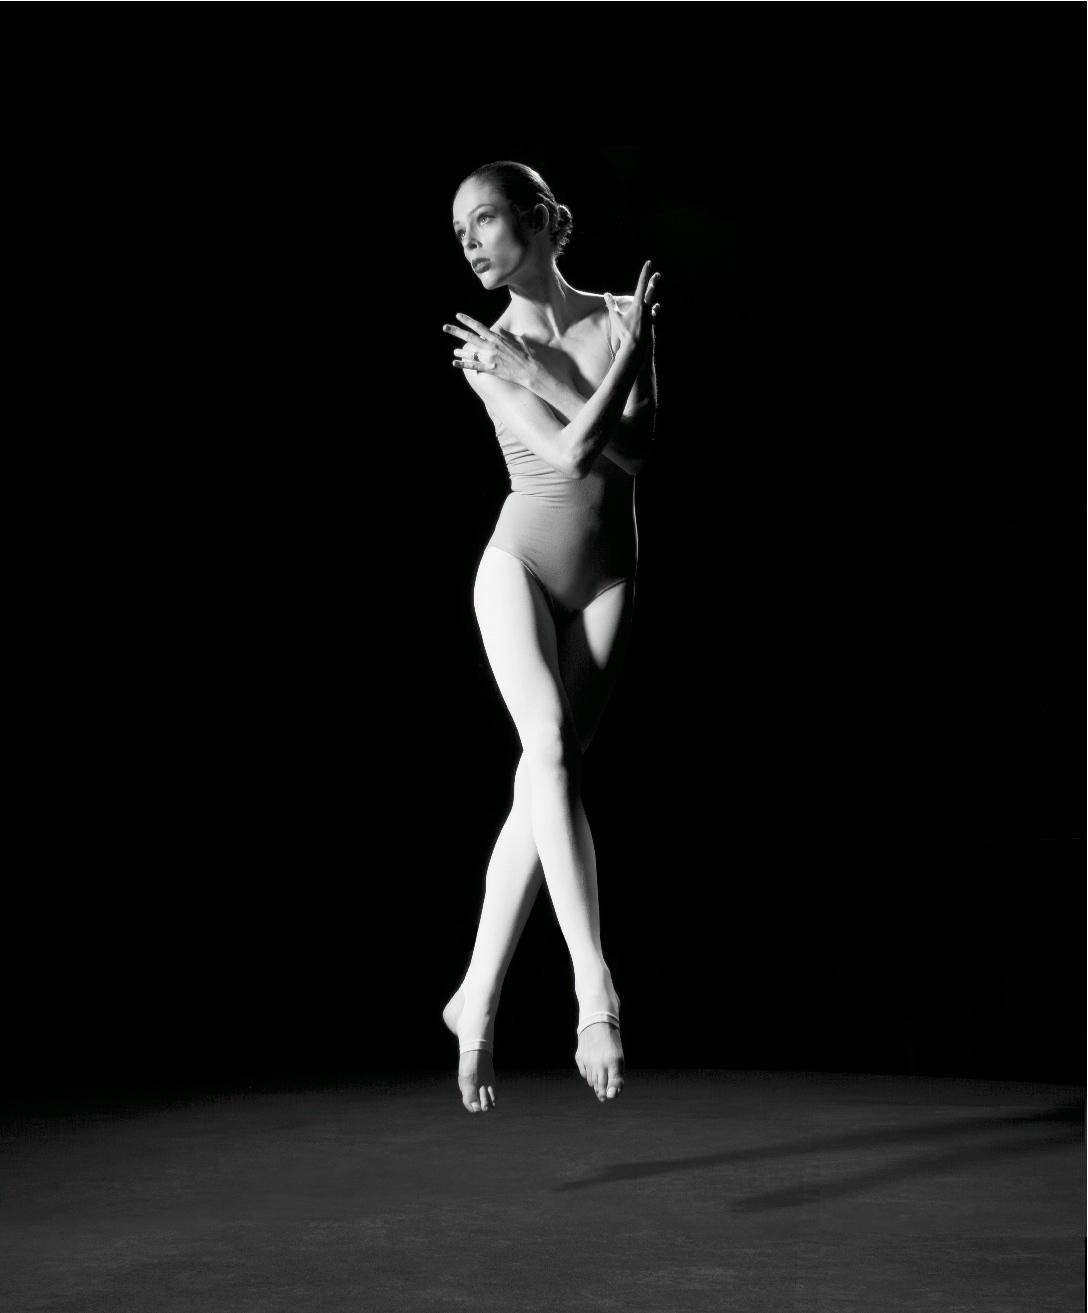 """RT @wmag: """"We wanted it to be timeless,"""" says @CocoRocha of her new book, #AStudyOfAPose. http://t.co/t6vK9FAltj http://t.co/iKH0nuP78t"""